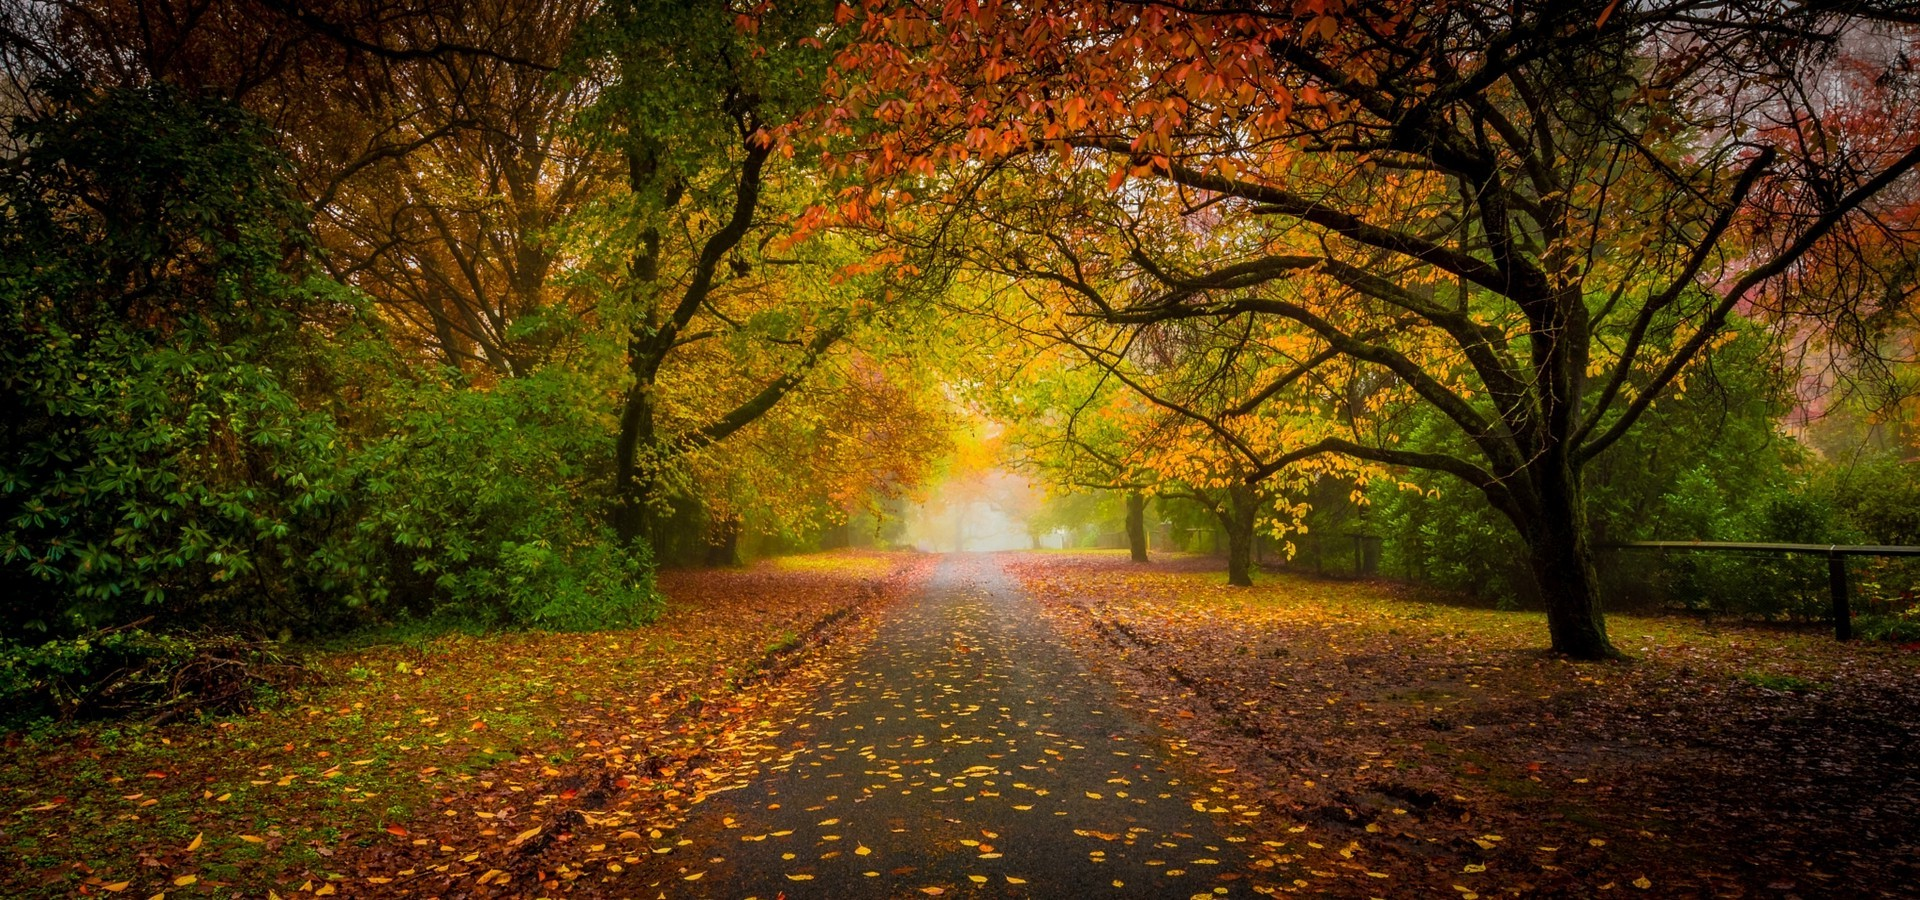 Nature Wallpaper Autumn Fall 1600x1200 Nature Landscape Road Fall Leaves Mist Trees Tunnel